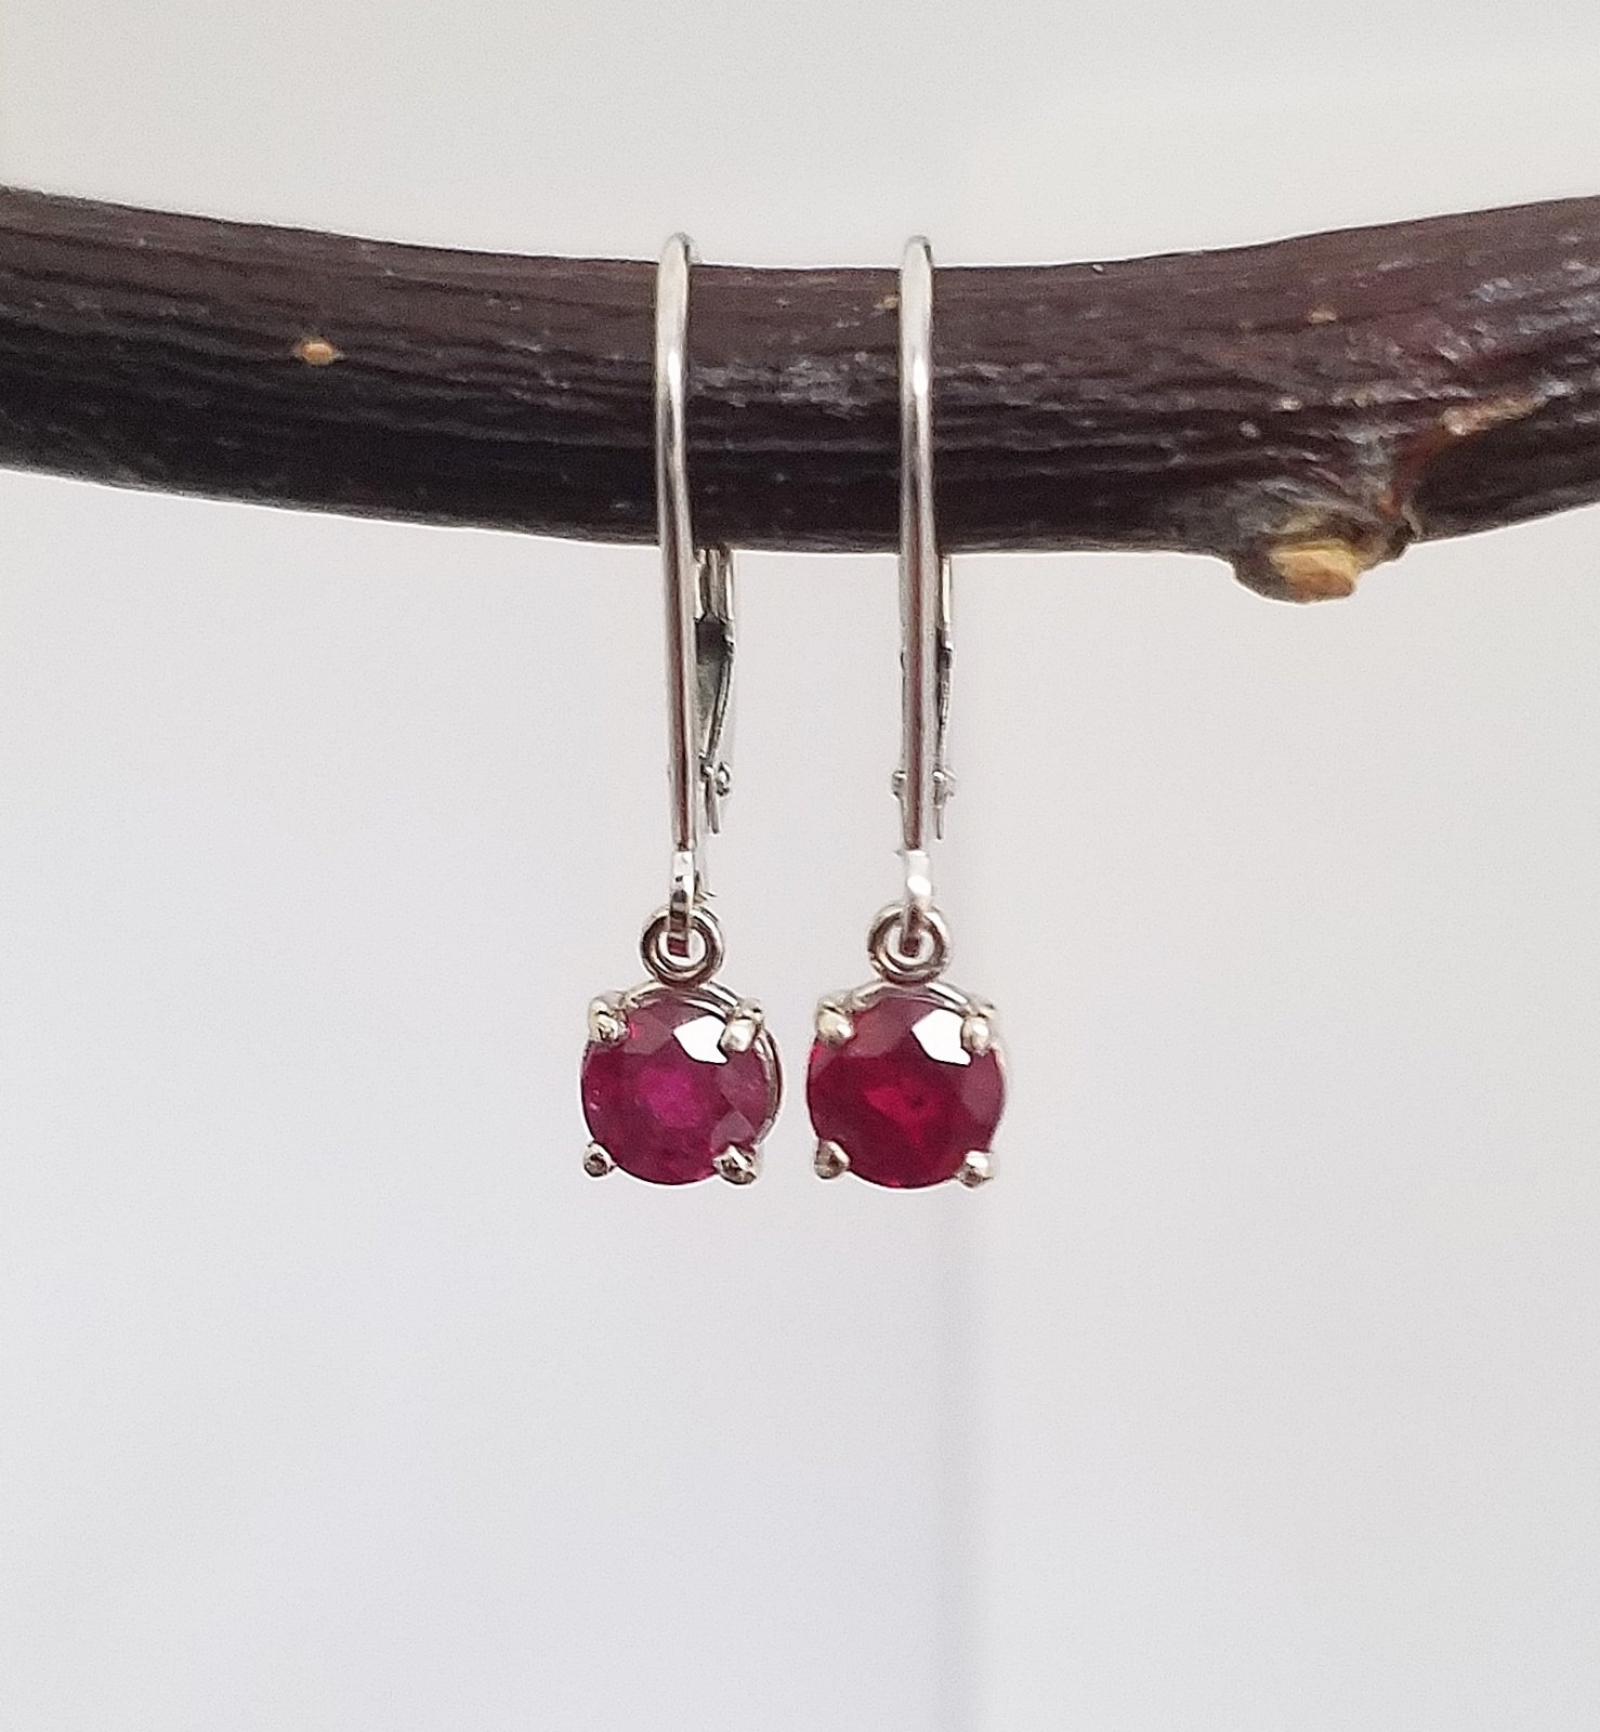 Genuine Ruby Dangle Earrings White Gold Gemstone Leverback July Birthstone Real Ready To Ship